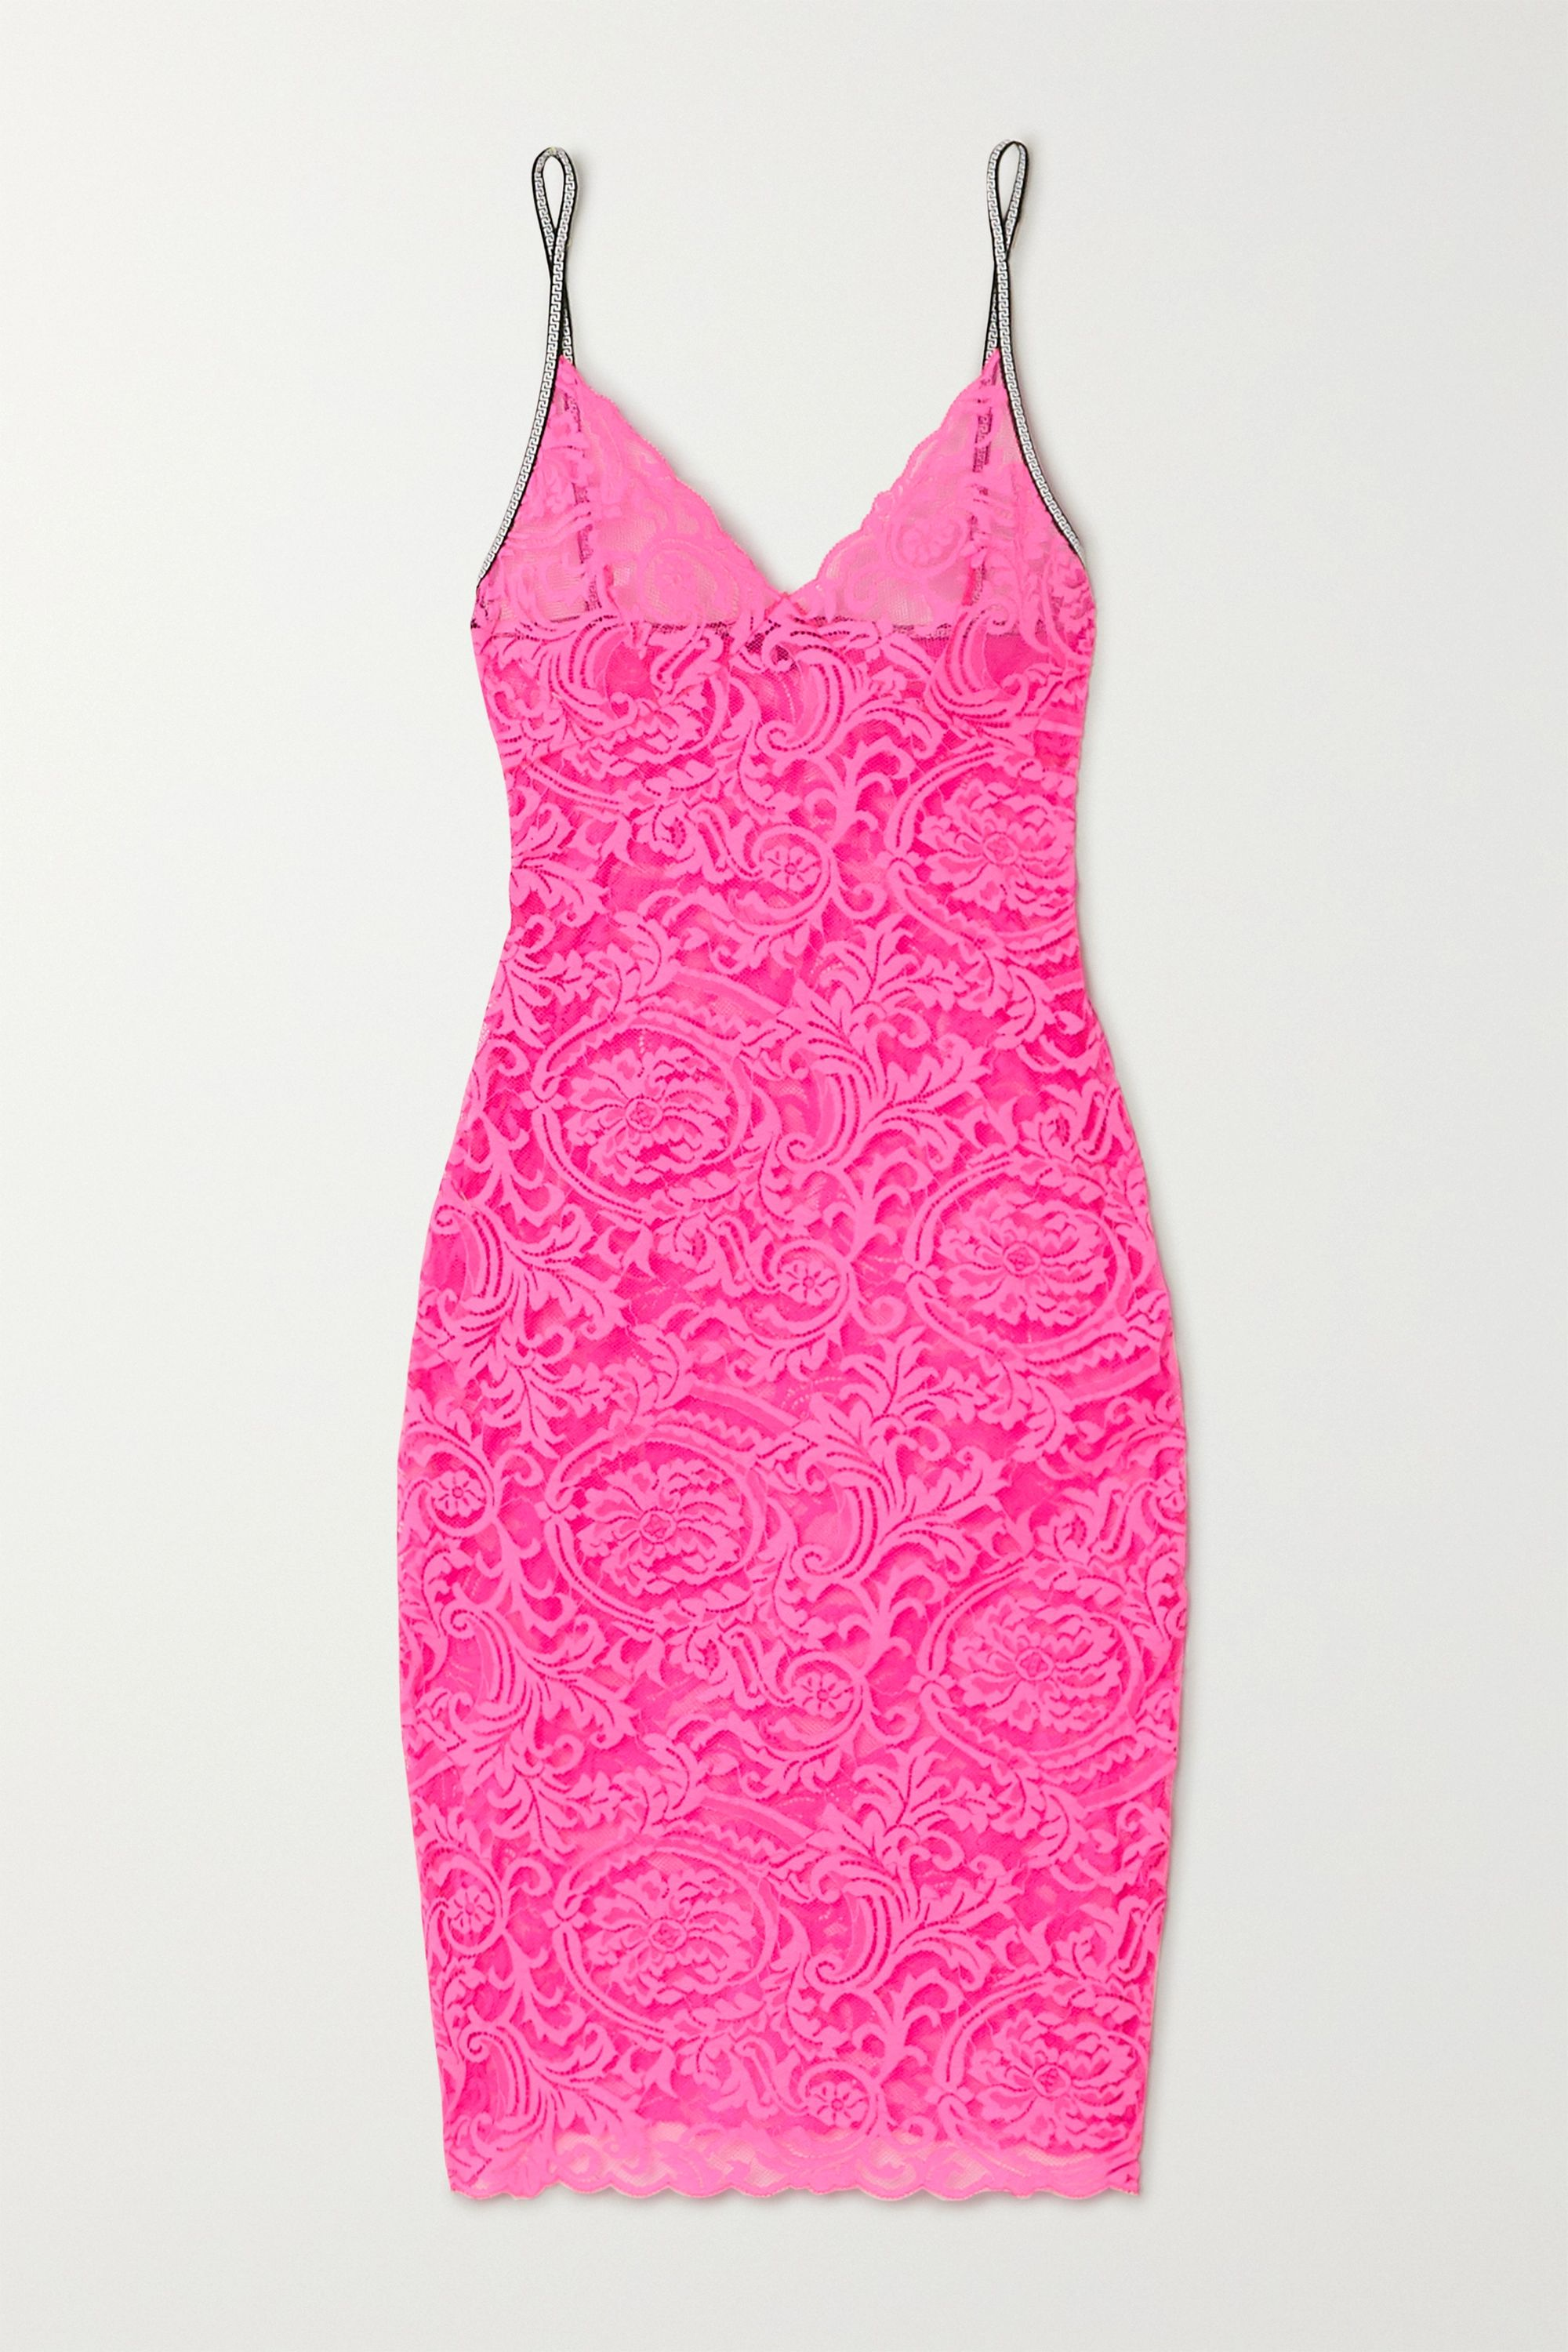 Versace Neon stretch-lace chemise